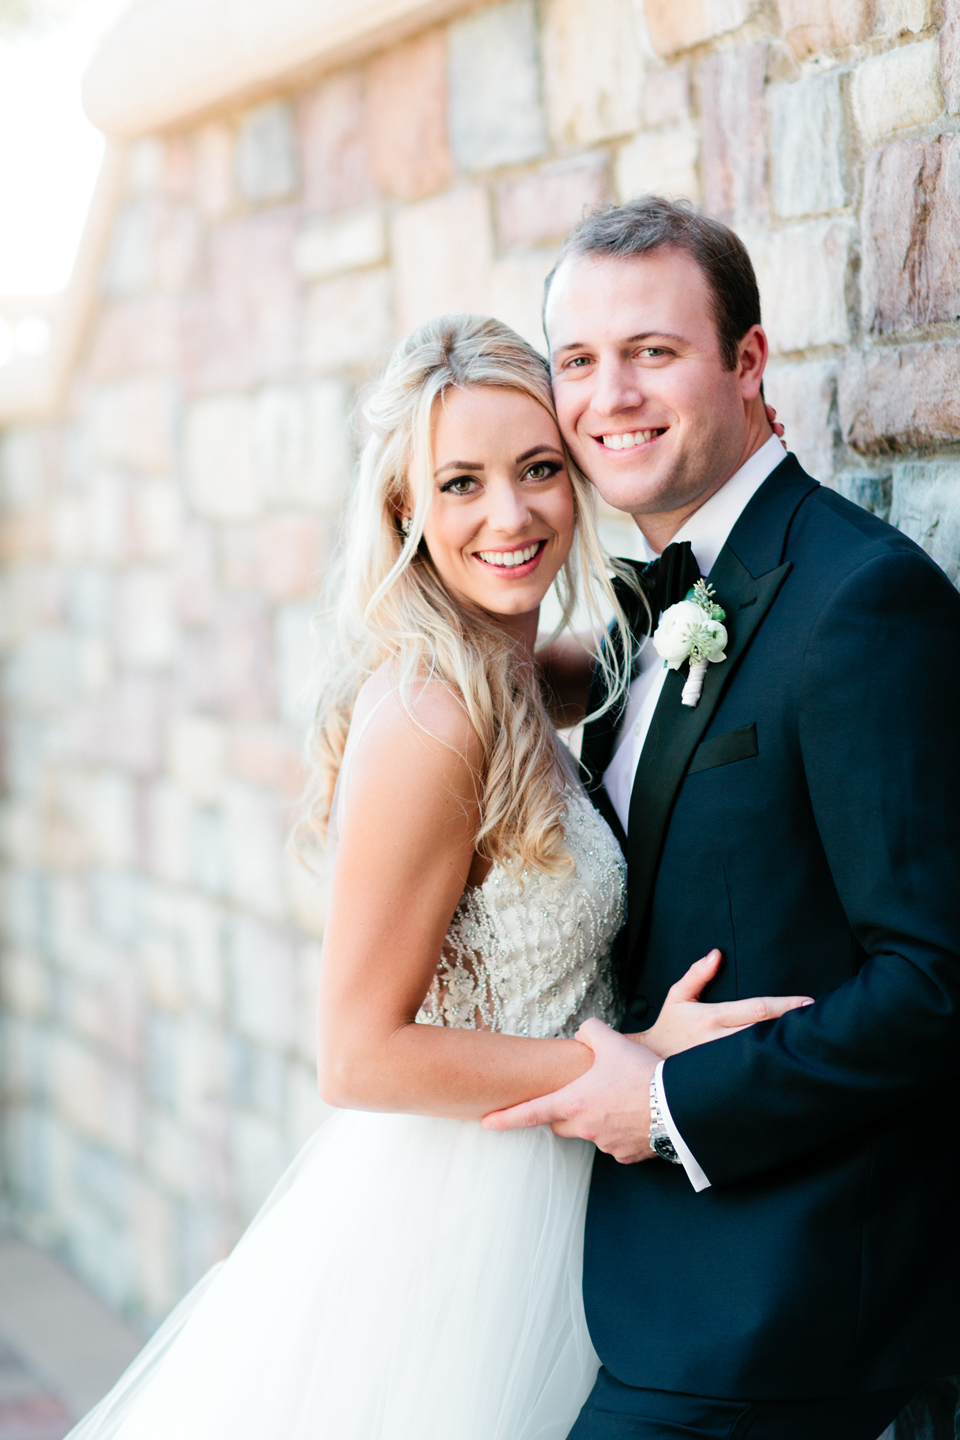 Image of a bride and groom on their wedding day at TPC Sawgrass in Ponte Vedra, Florida